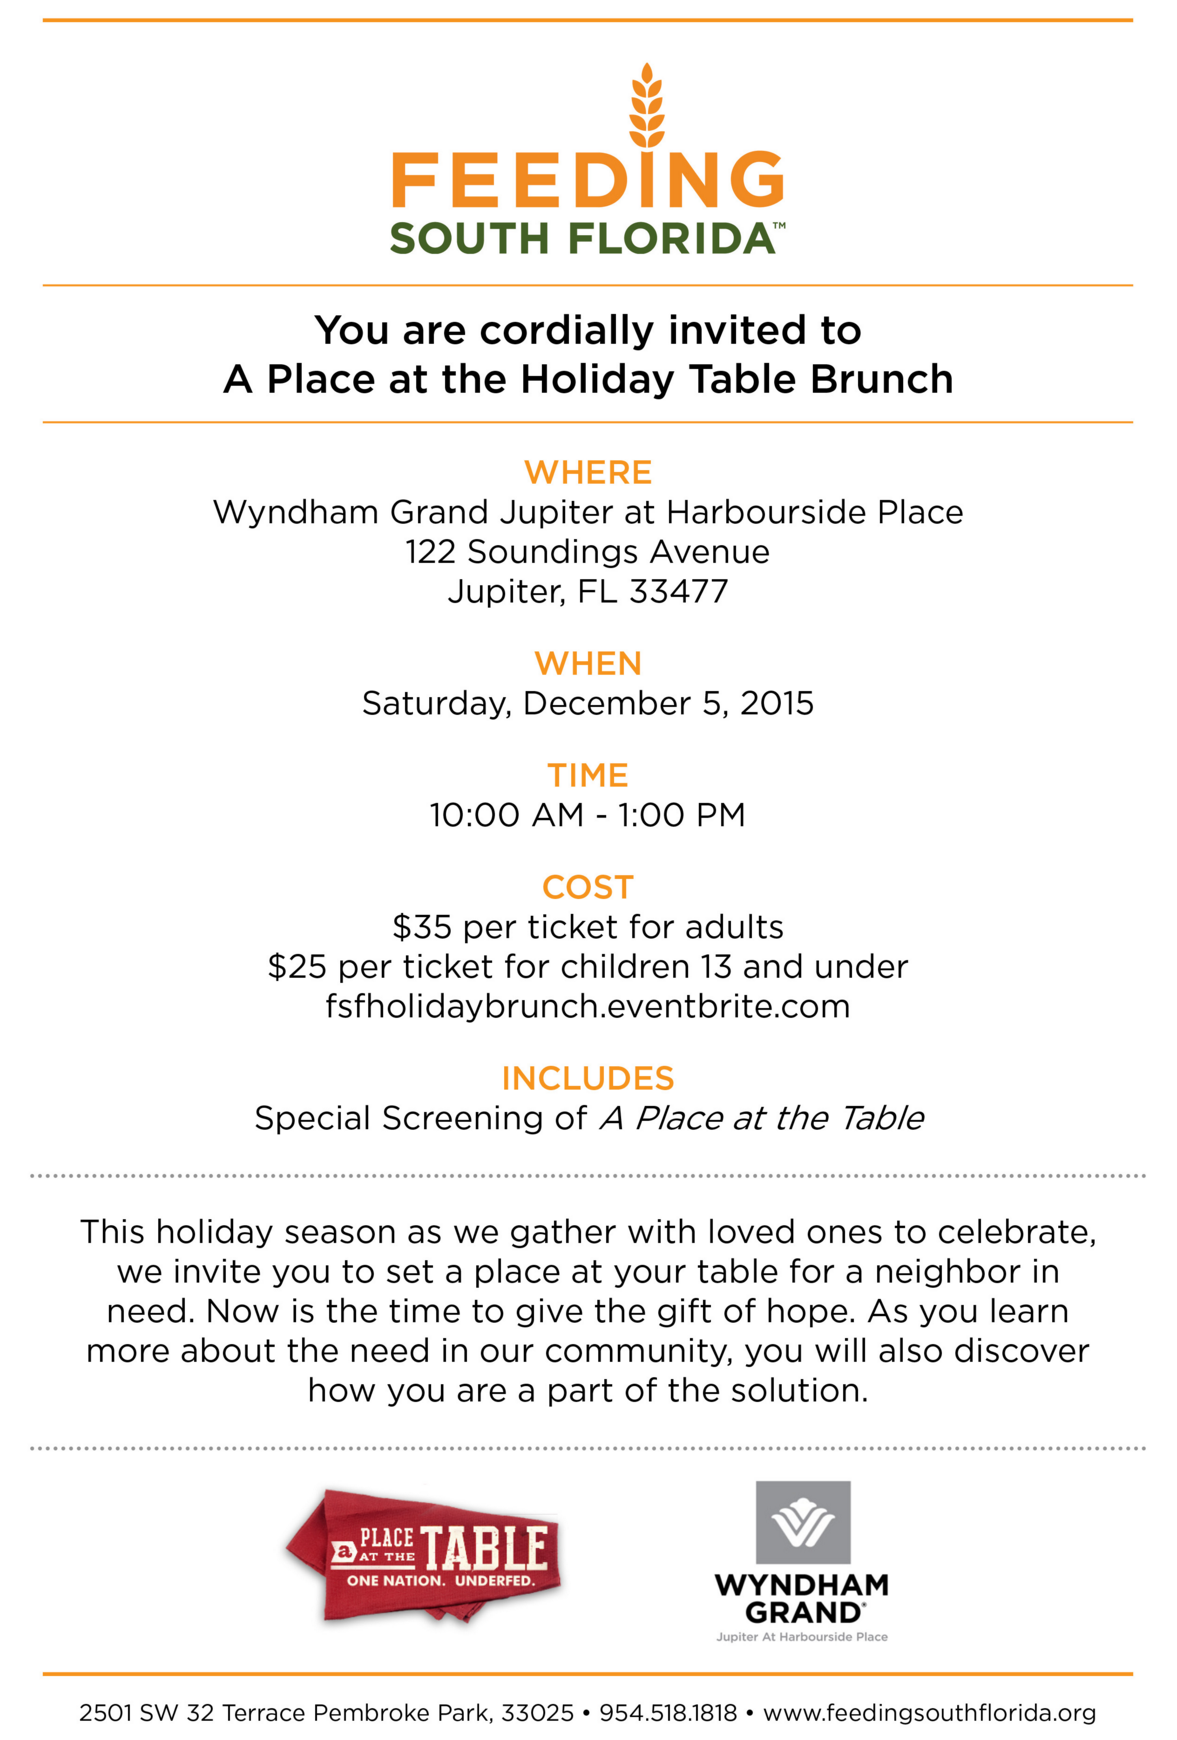 A Place at the Table Invitation – Feeding South Florida